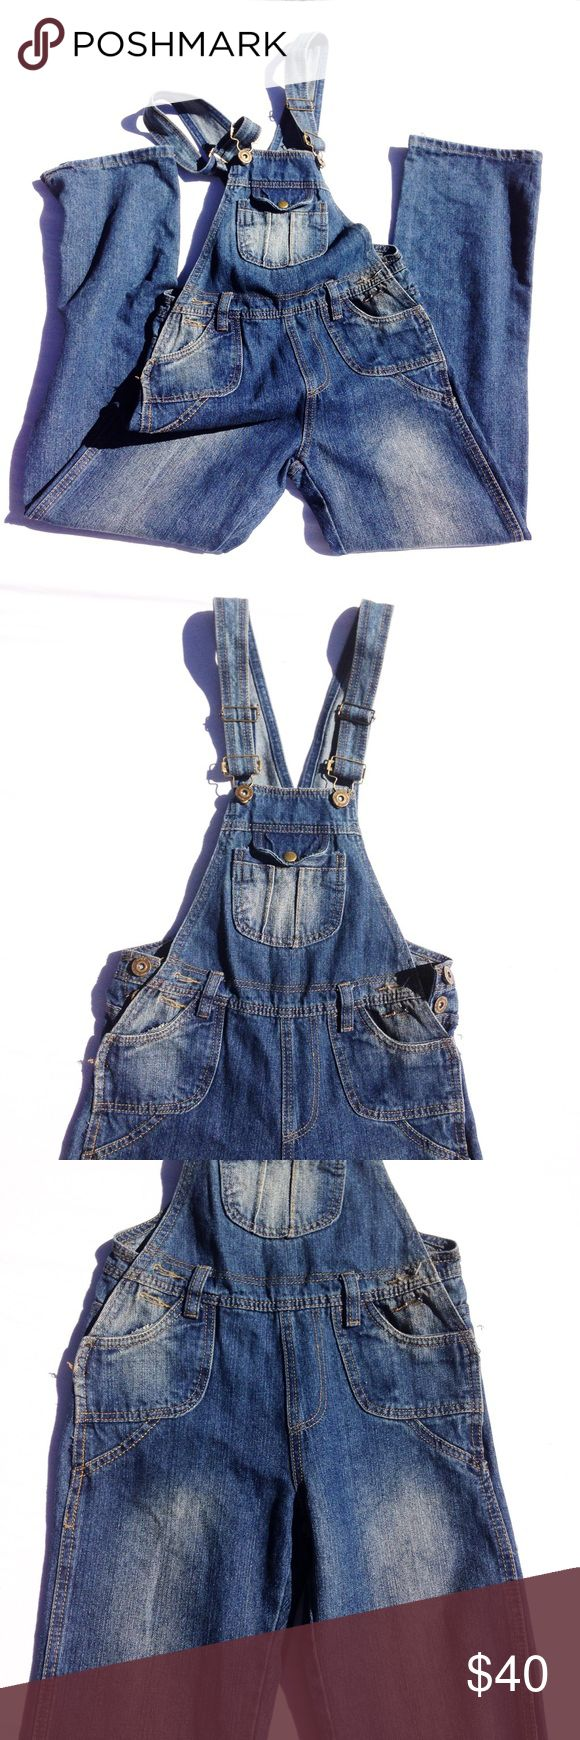 🆕JEAN OVERALLS The size rage is missing but there are XS. Very cool and perfectly worn in. You will live in these. Middle, laying down is appx 15.5, inseam appx 28. Thank you for visiting my closet. Please feel free to ask me any questions. I am here to help you. :) Bundle to save. Jeans Overalls